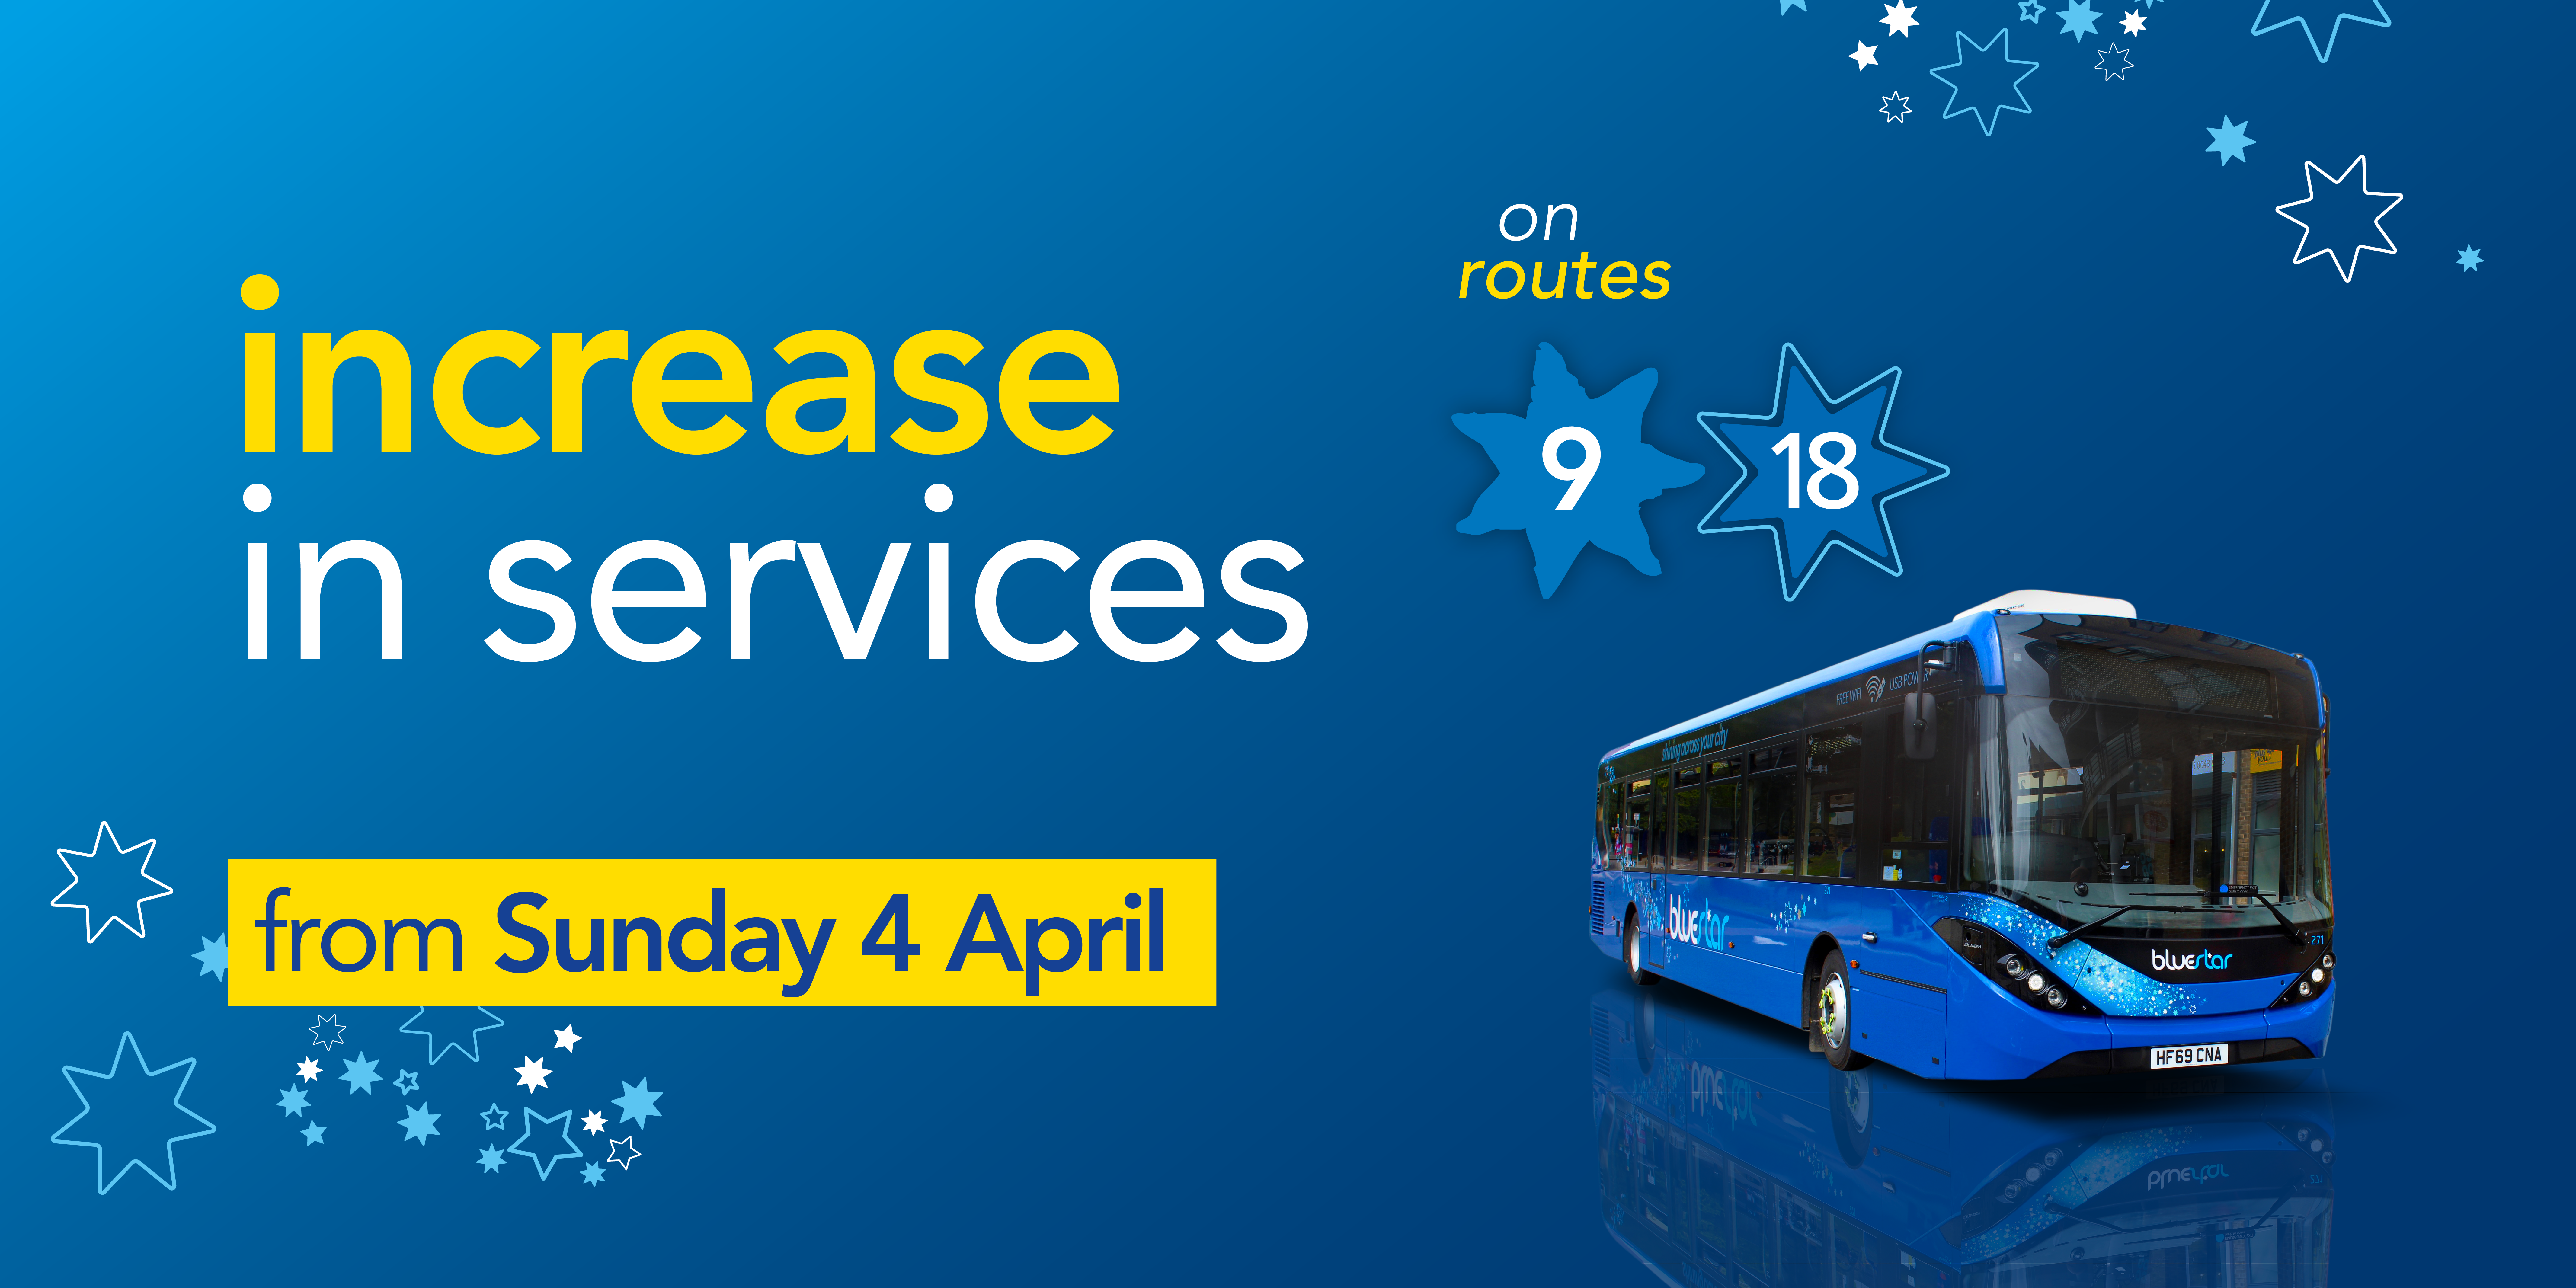 Image with a bus and text reading 'increase in services from Sunday 4th April on routes 9 and 18'